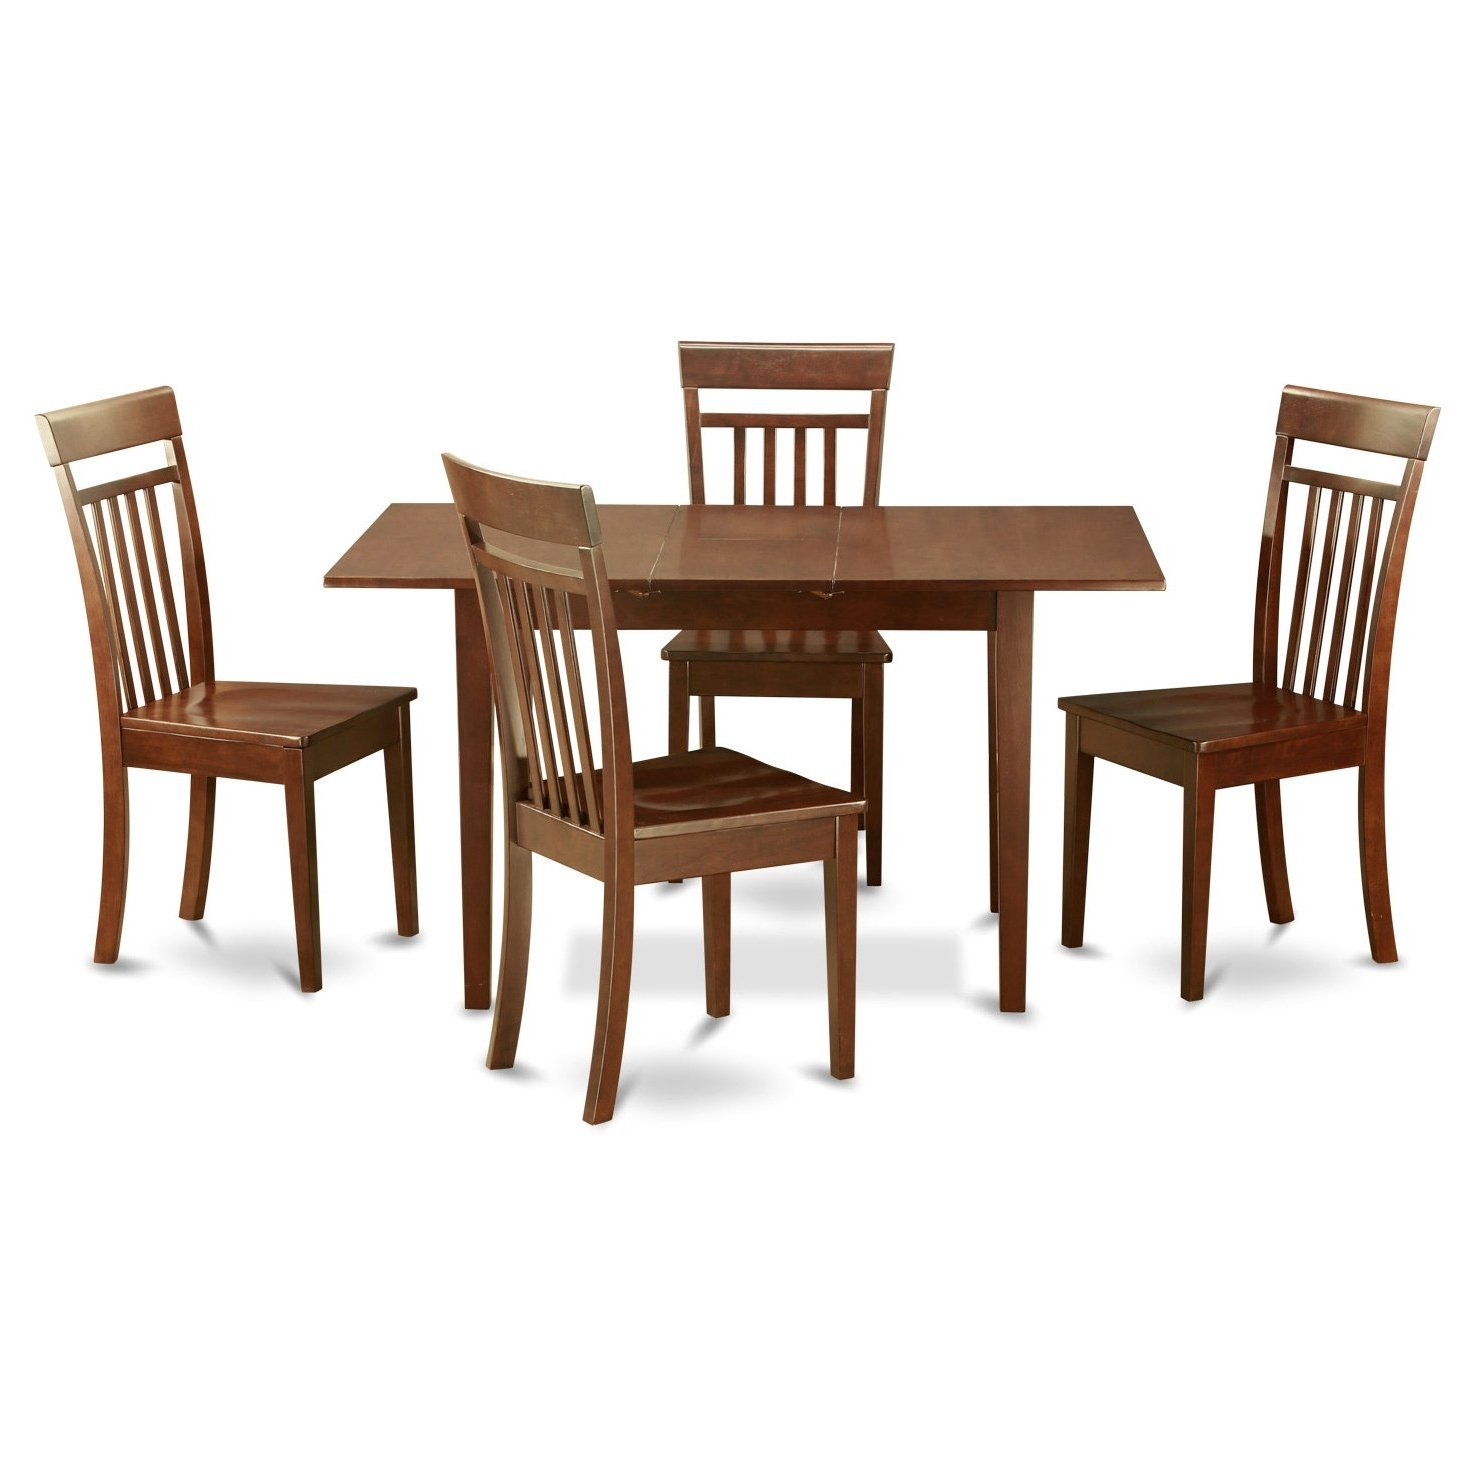 Trendy Mahogany Dining Room Table And 4 Dining Room Chairs Chairs 5 Piece Intended For Mahogany Dining Table Sets (View 21 of 25)